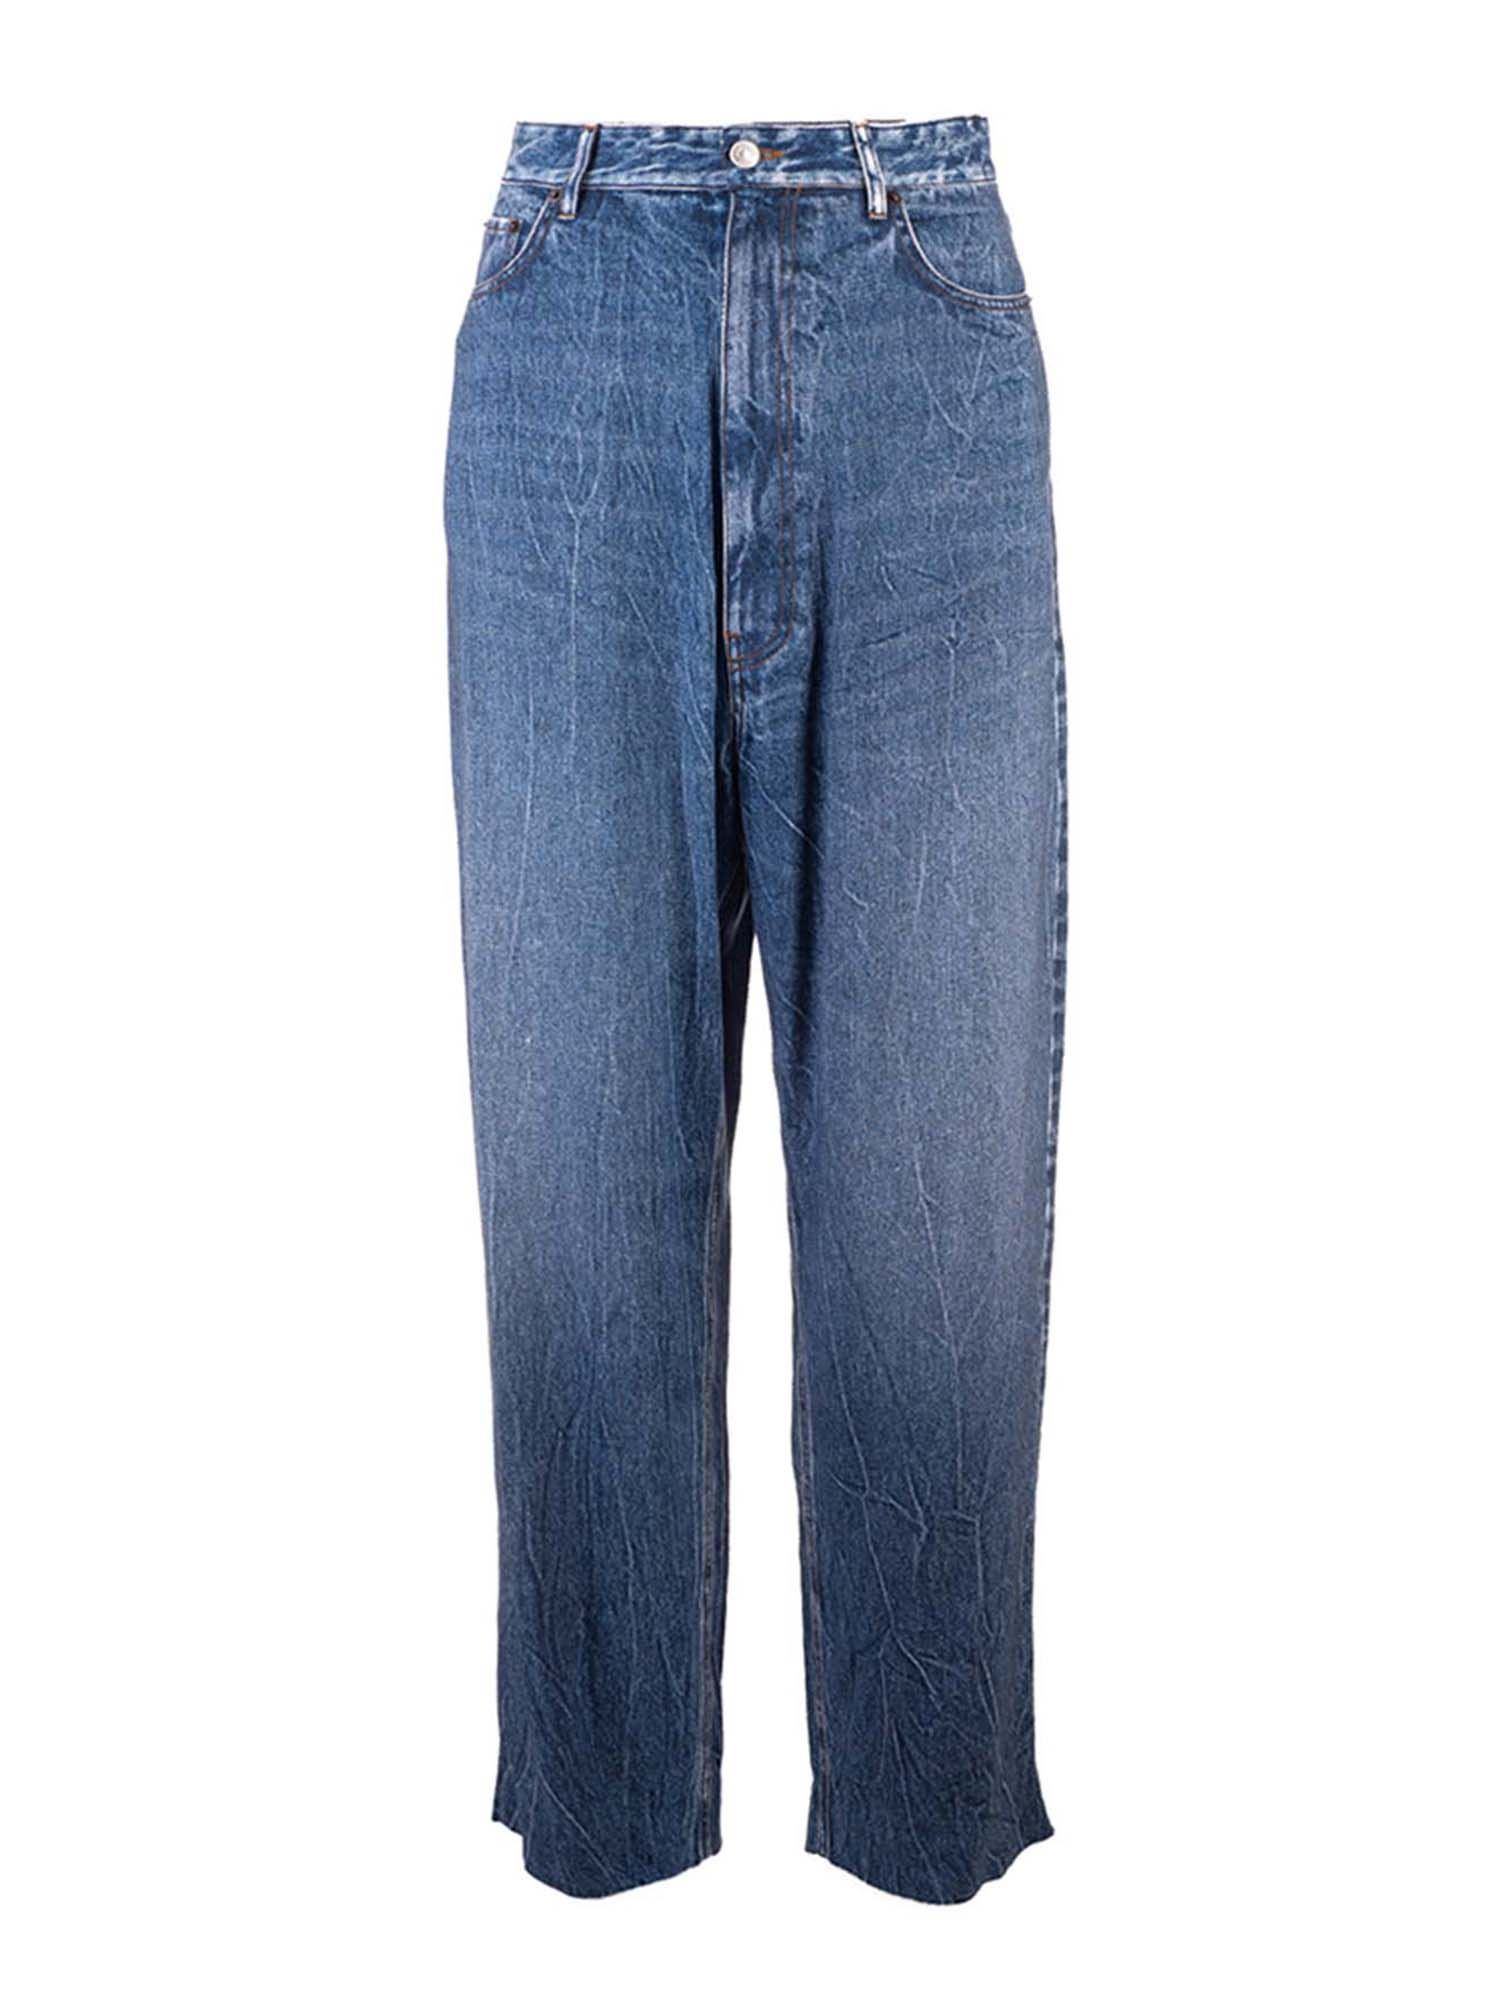 Balenciaga TROMPE L'OEIL BAGGY TROUSERS IN BLUE